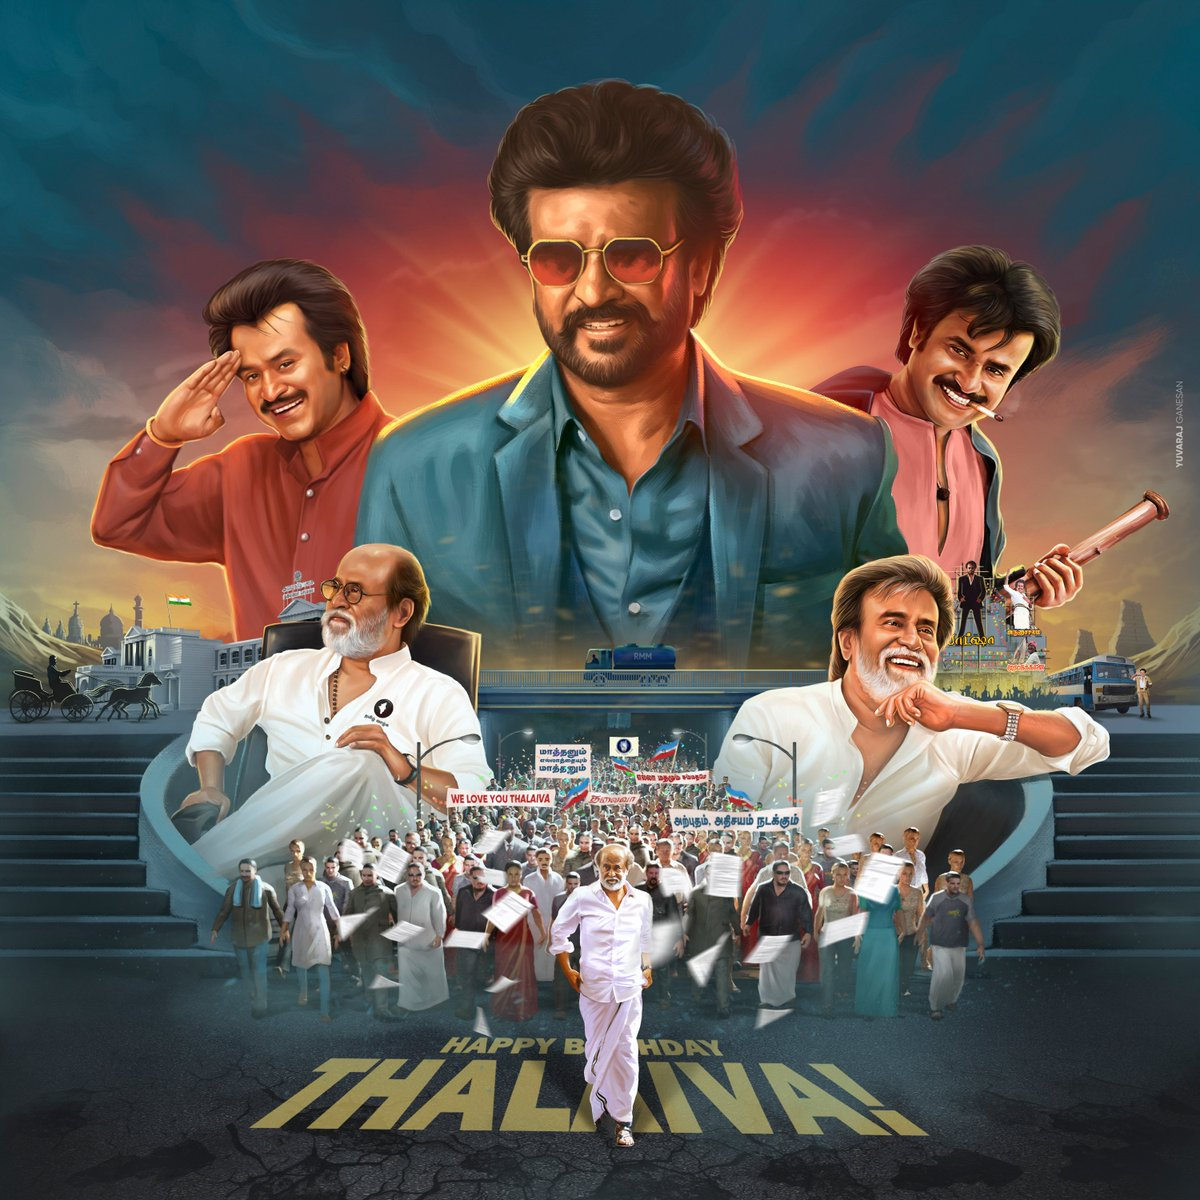 On behalf of Superstar #Rajinikanth fans, we thank every celebrity who accepted our request. We appreciate that you took the time to release #Thalaivar's 70th birthday CDP. The 70+ celebs made our online celebration even more special. 😍🤘  #HBDSuperstarRajinikanth #Annaatthe